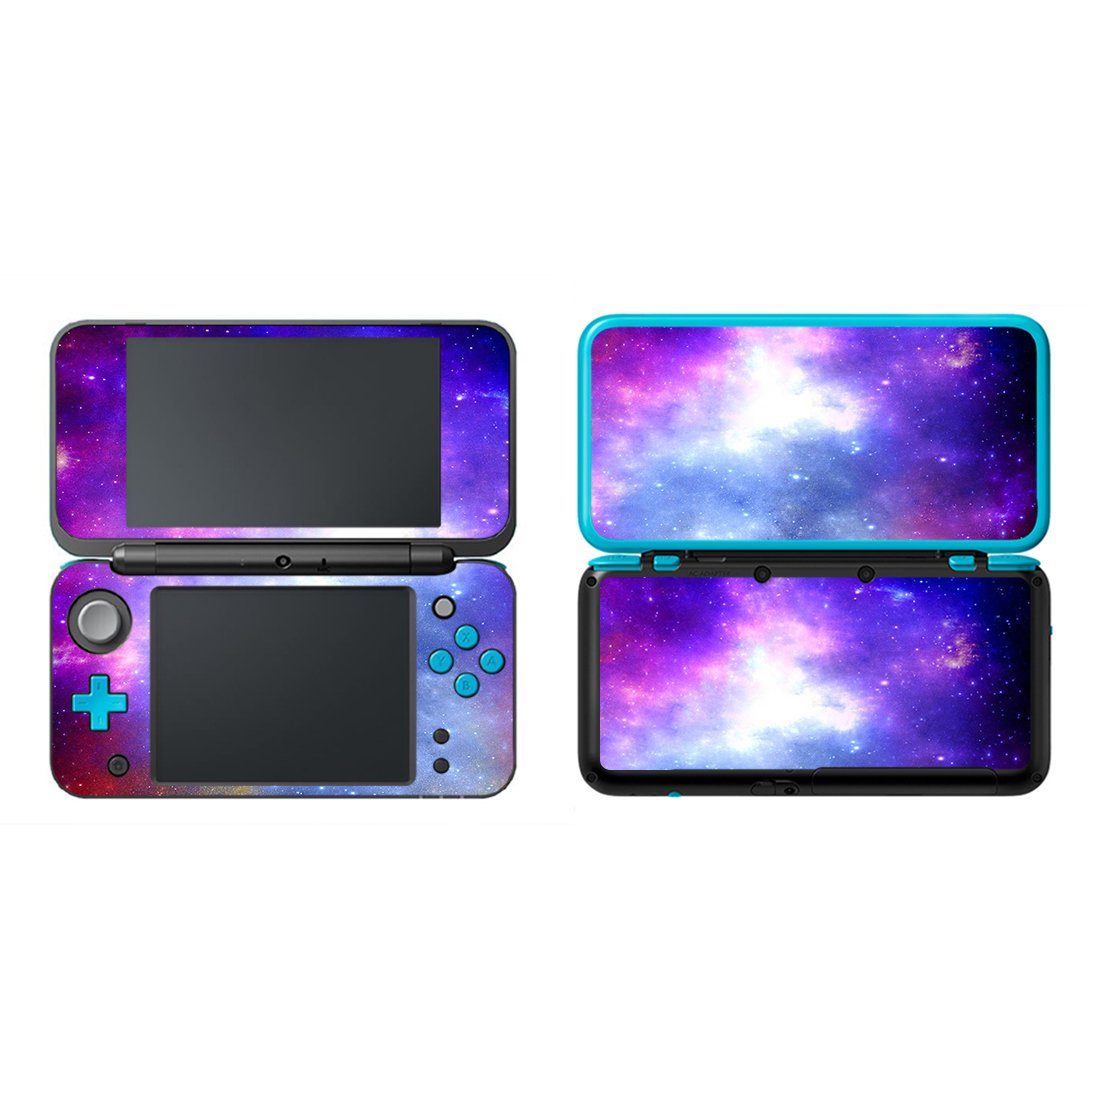 FOTTCZ Vinyl Cover Decals Skin Sticker for New Nintendo 2DS XL/LL - Blue and Purple Cosmic